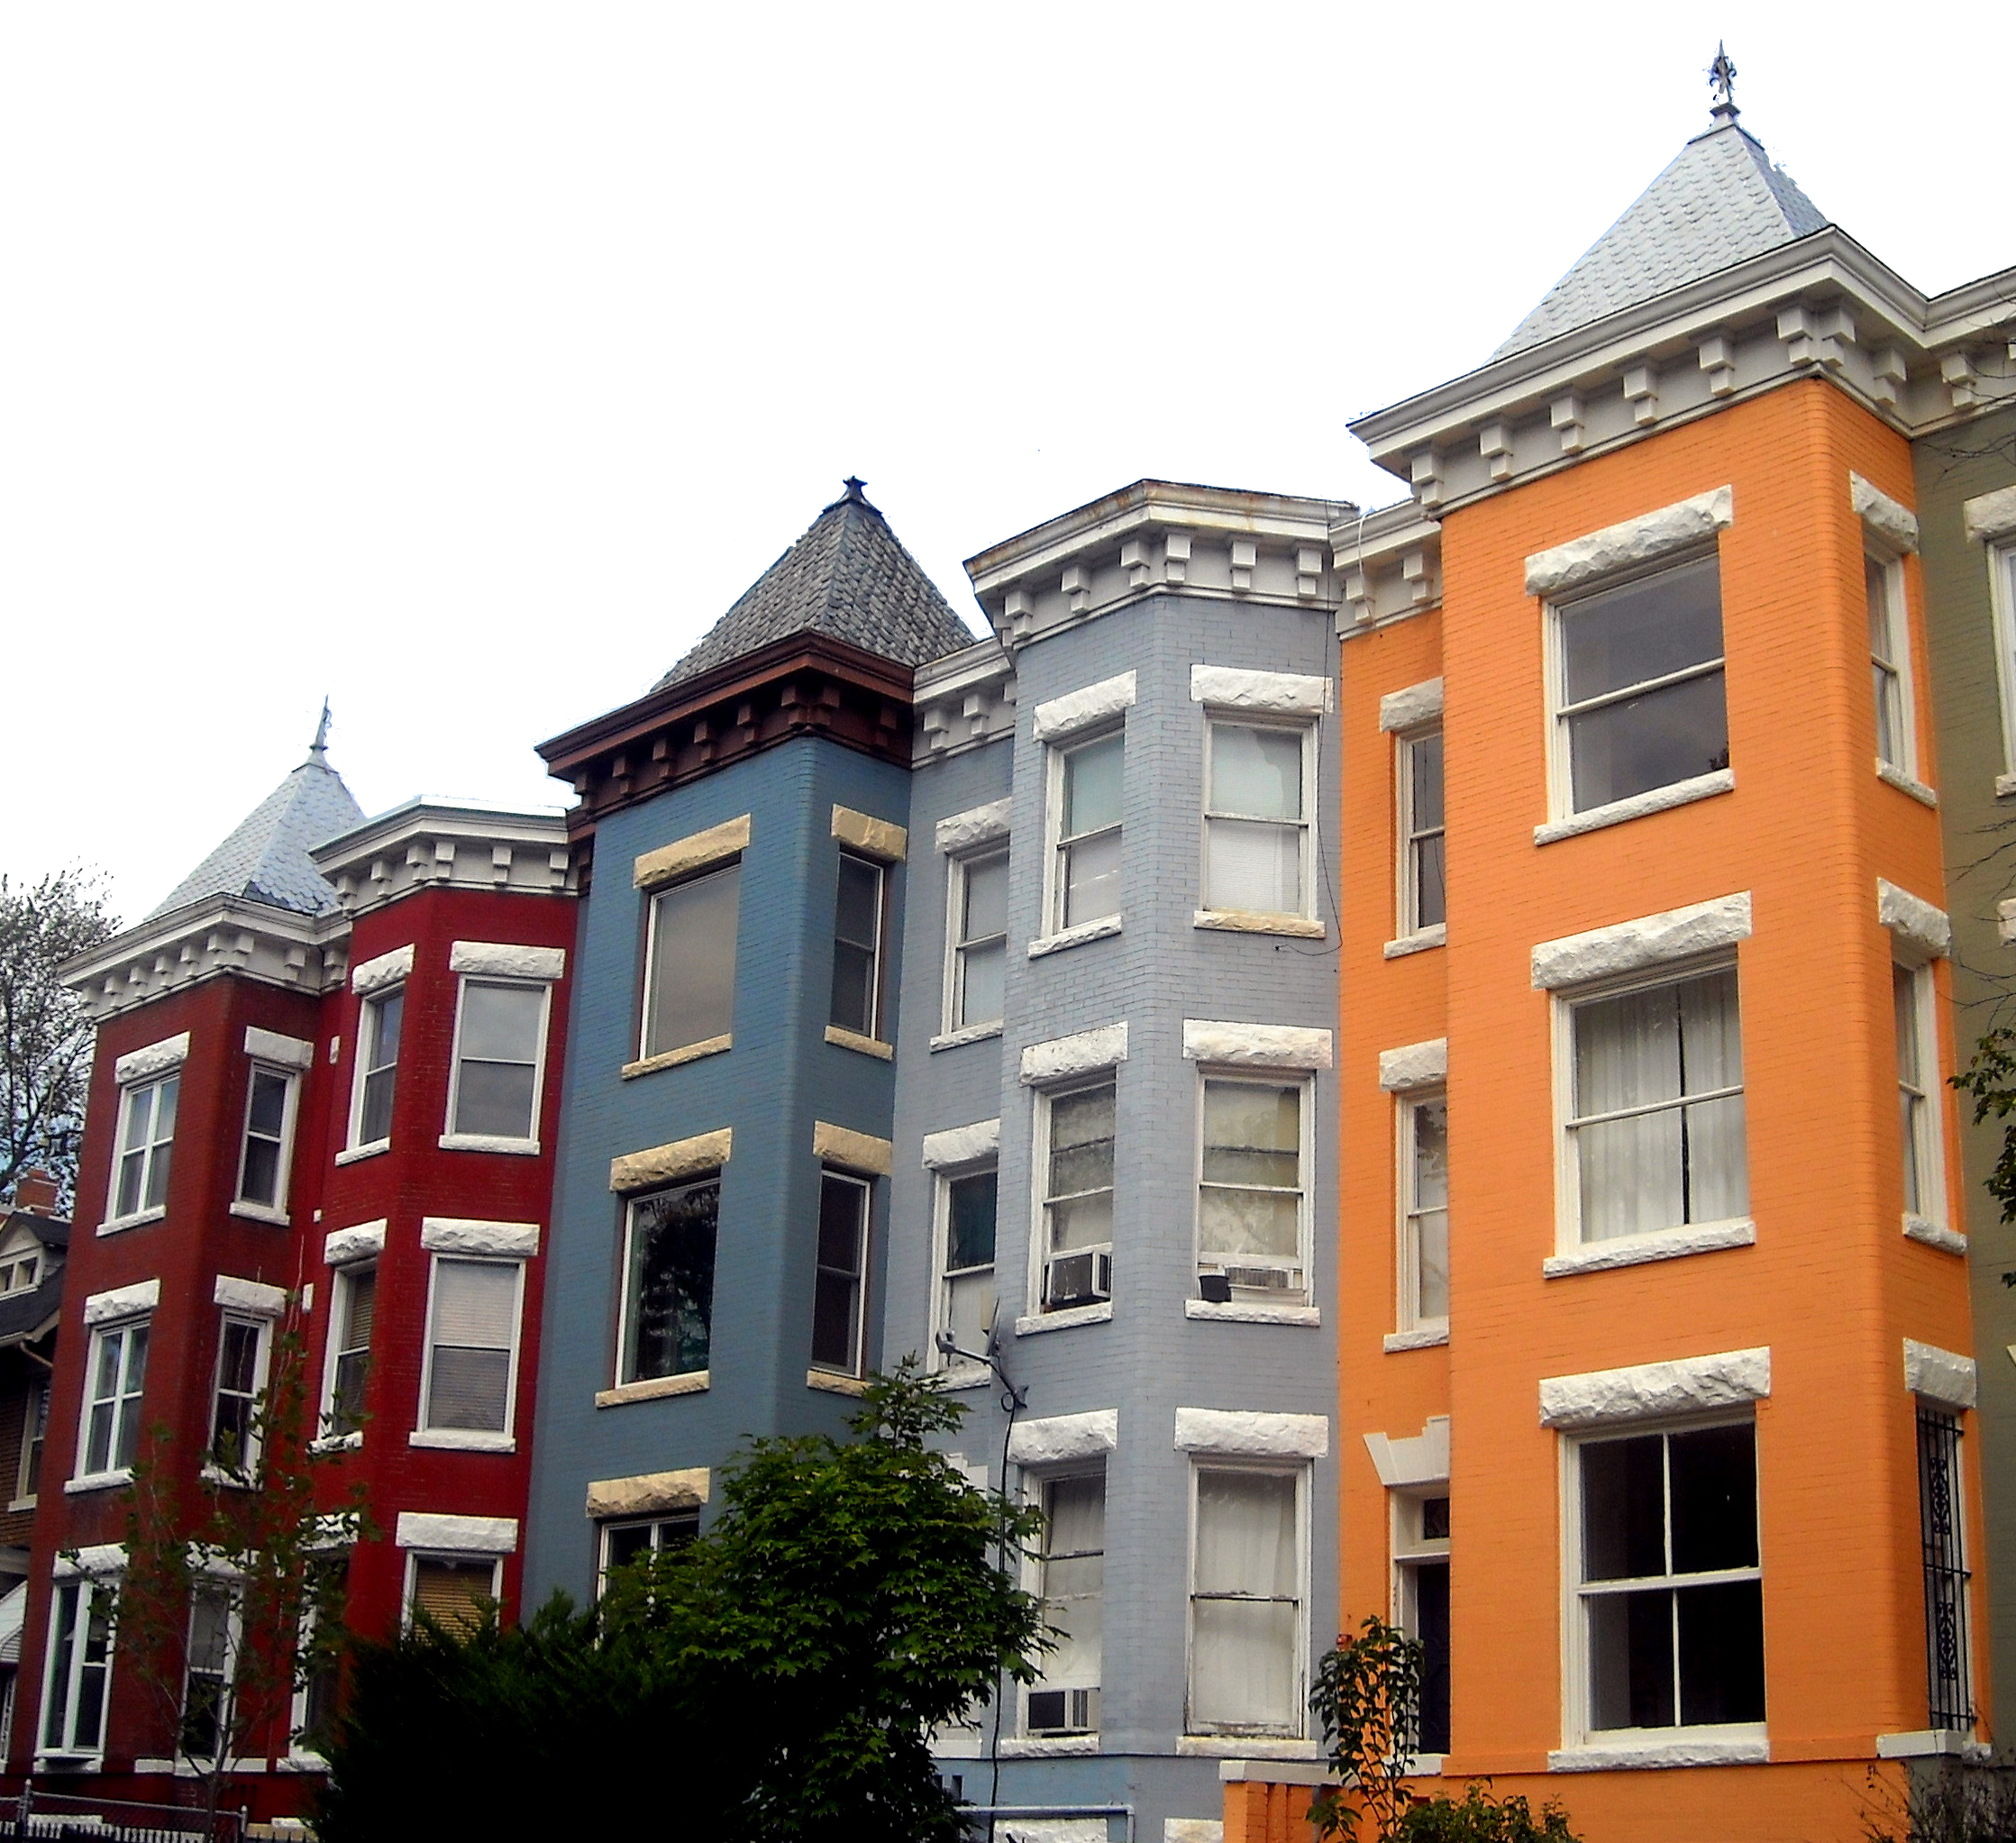 row of houses clipart. row houses image of clipart